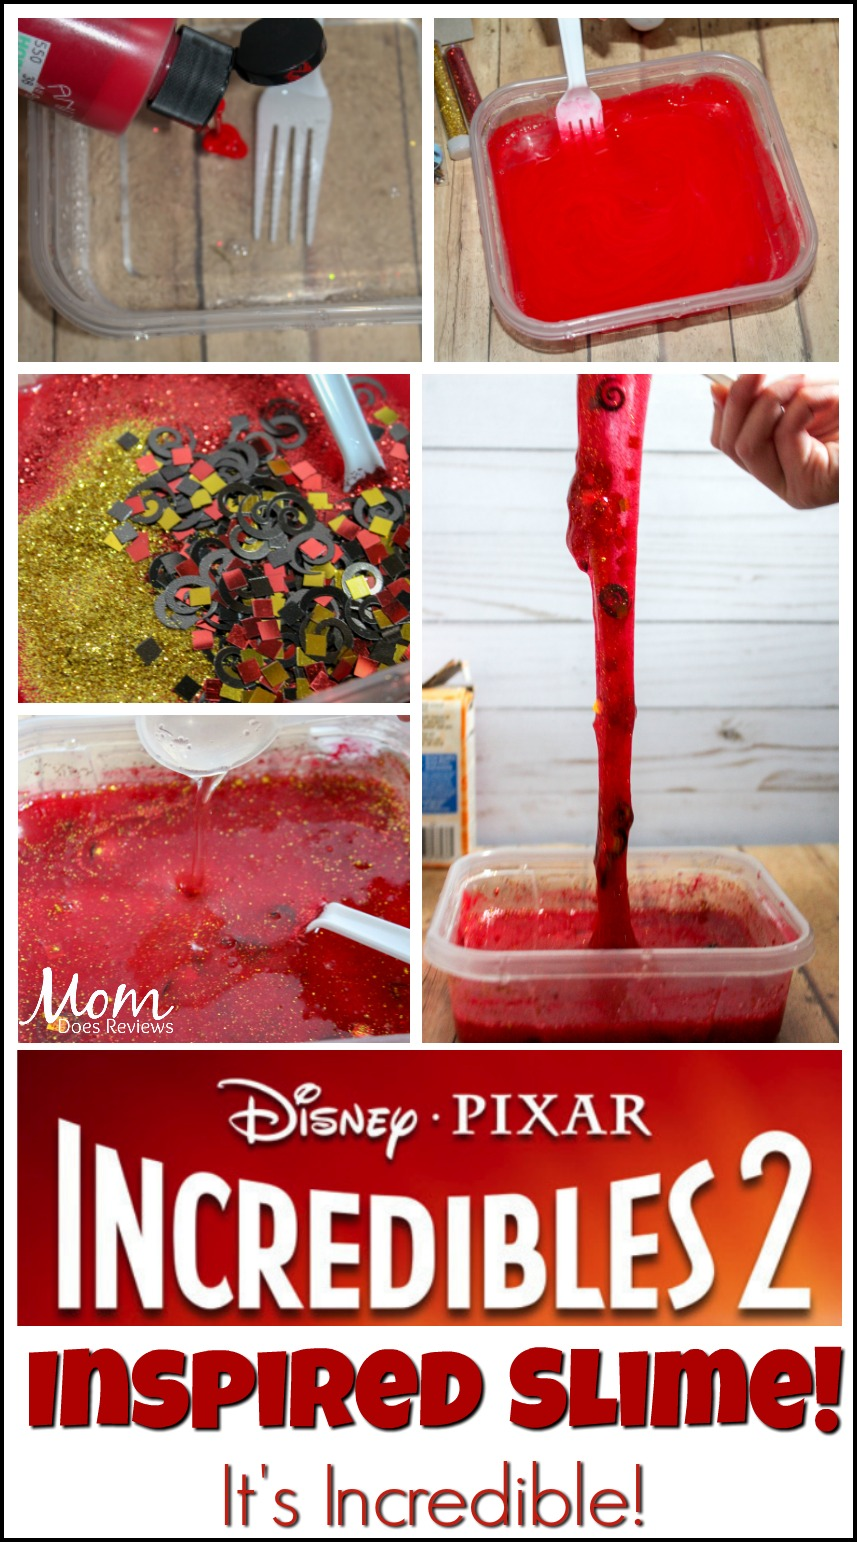 Incredible Inspired Slime #craft #incredibles2 #slime #funstuff